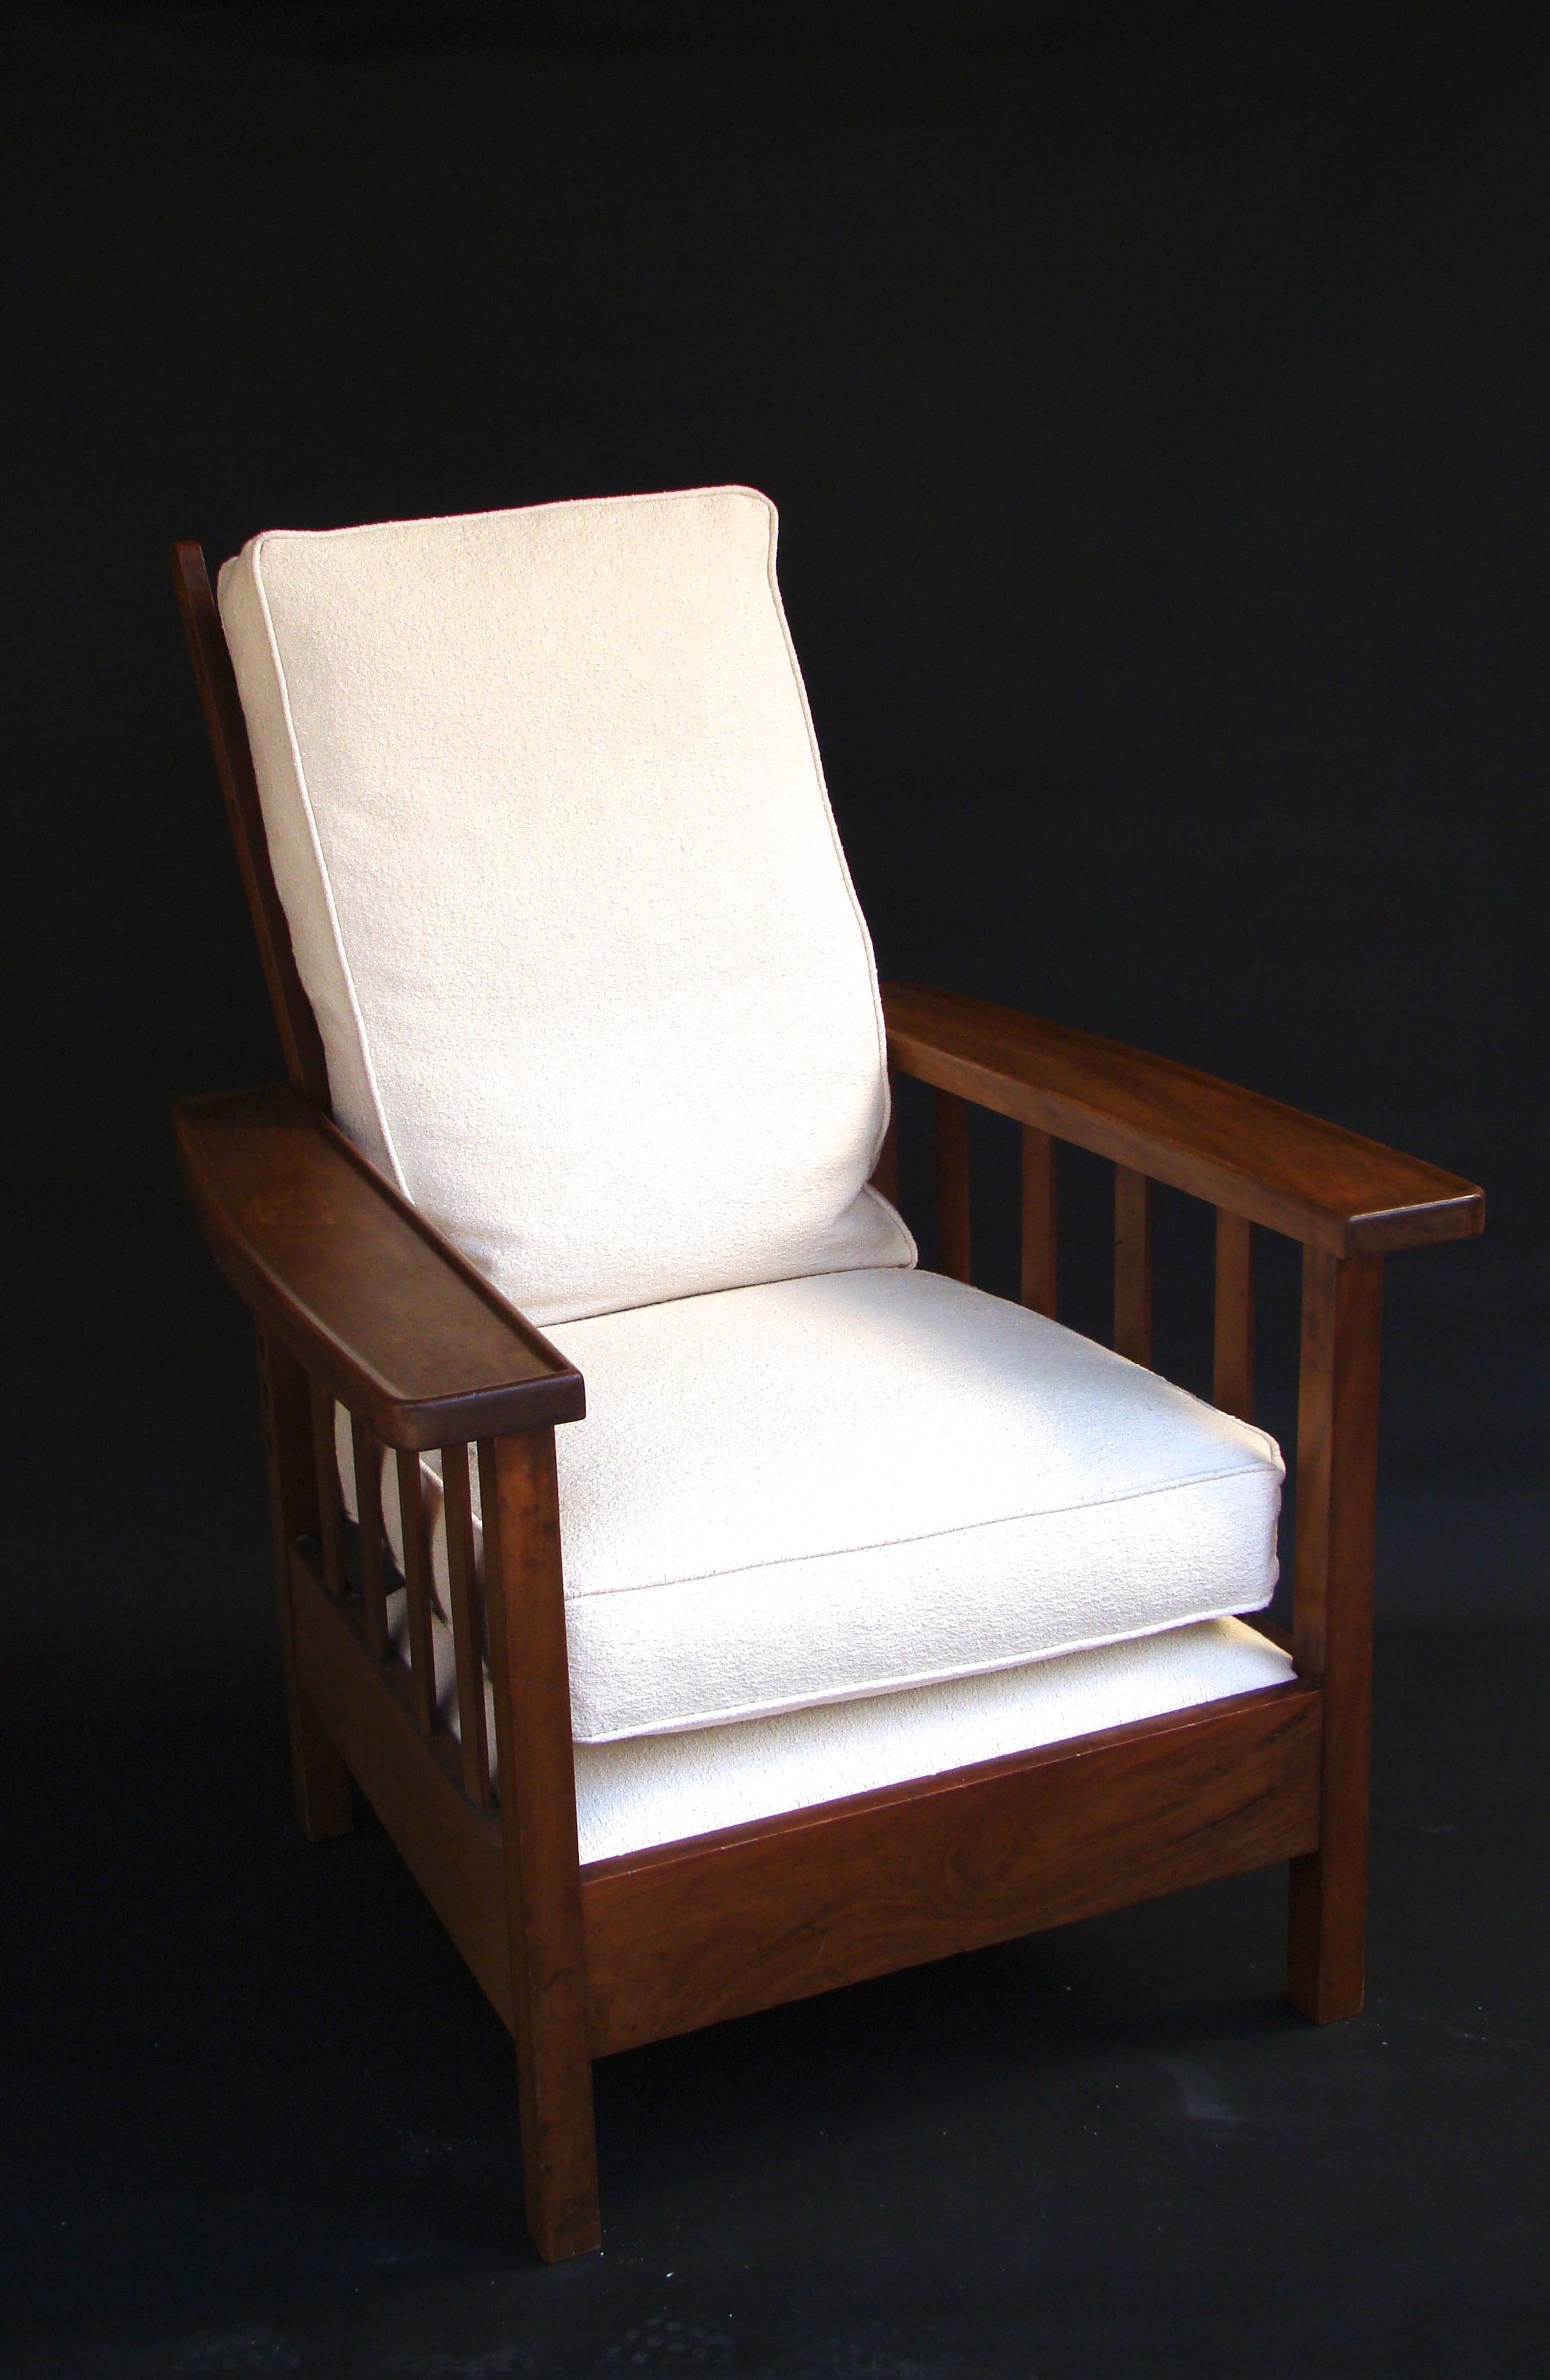 chaise longue fauteuil arts and crafts en acajou de william morris circa 1930 - Fauteuil Chaise Longue